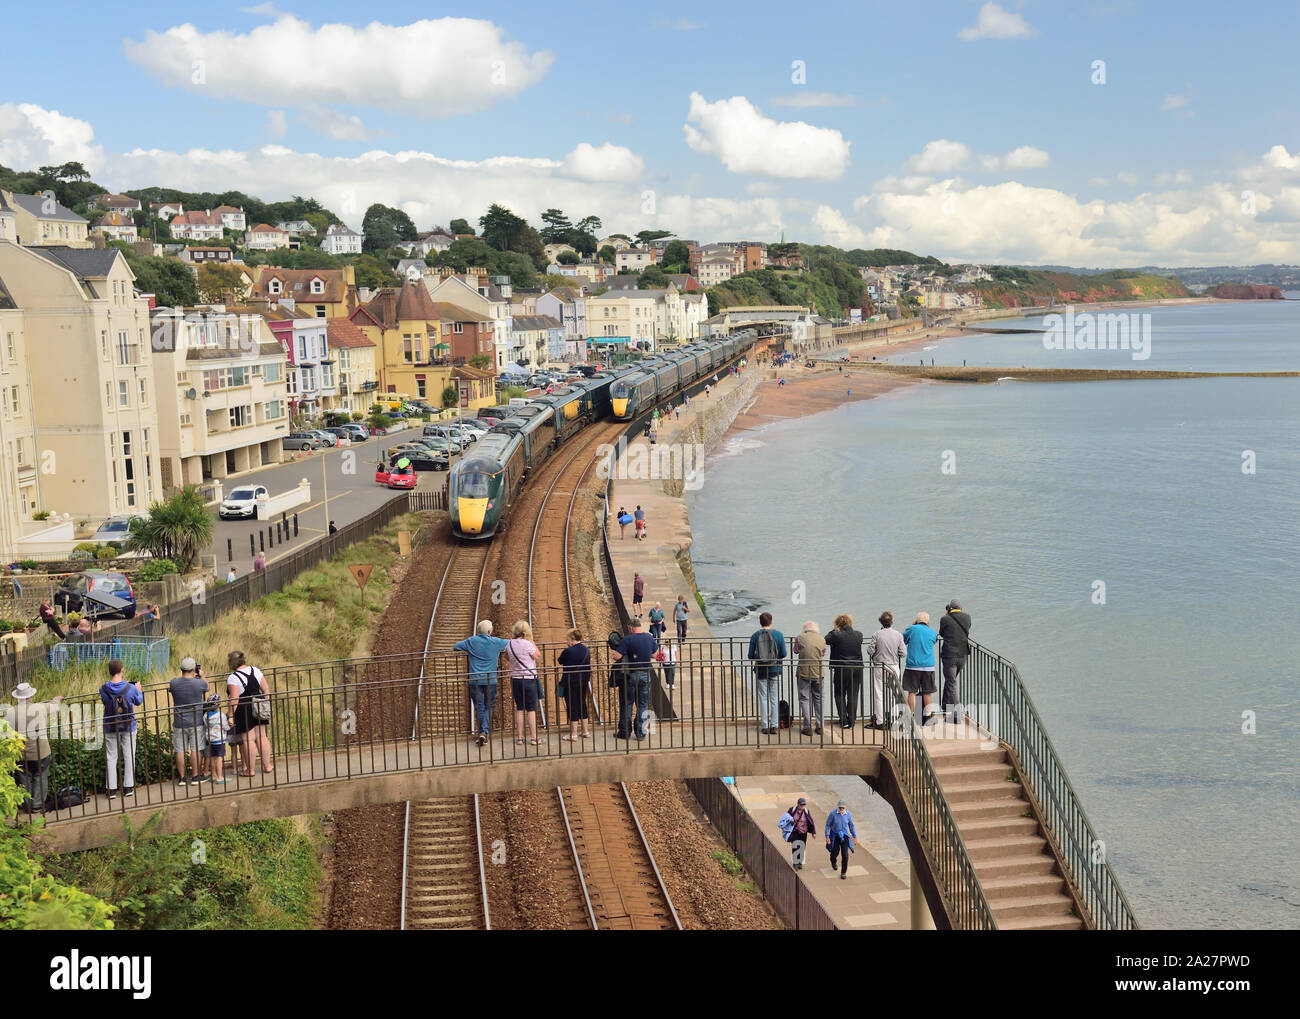 Great Western Intercity Express trains passing at Dawlish, watched by people on a footbridge. Stock Photo